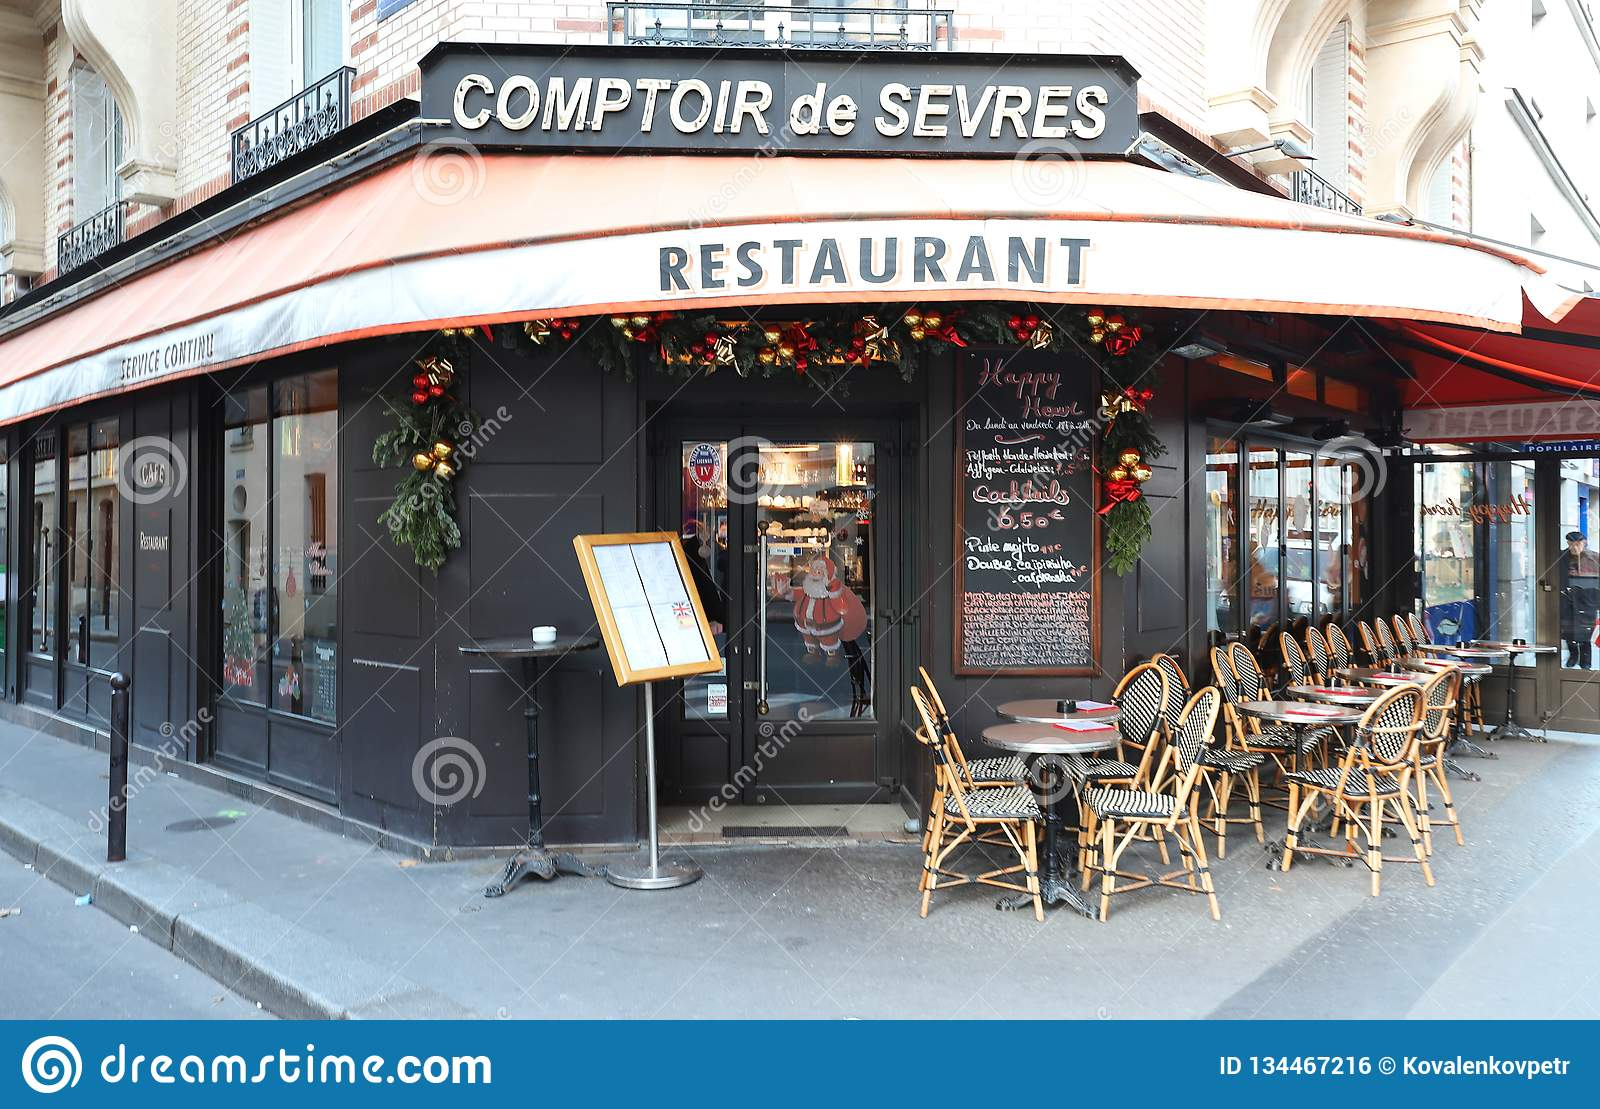 Comptoir De L Or Paris The Traditional Small French Restaurant Le Comptoir De Sevres